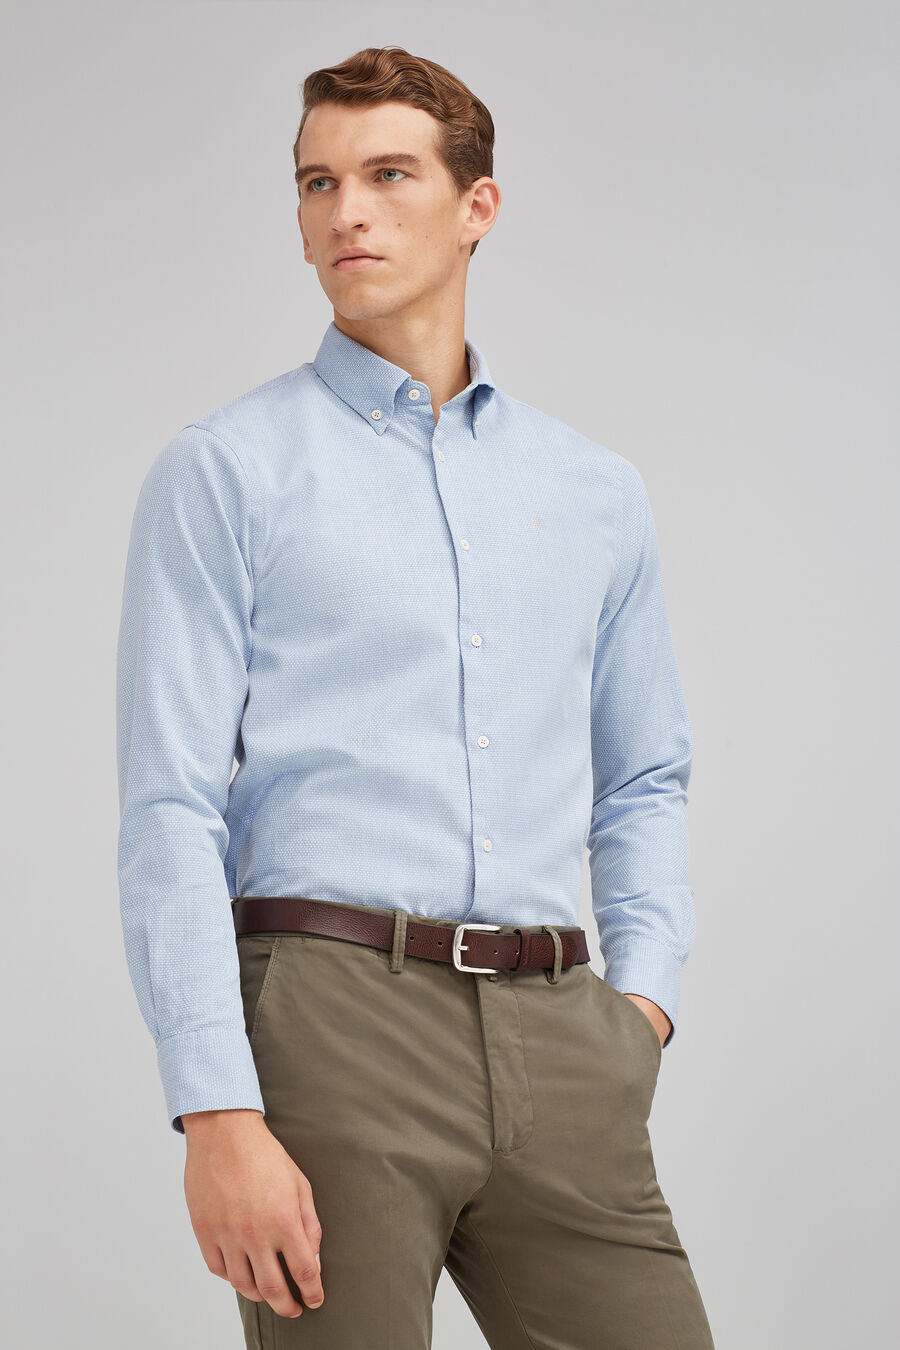 Indigo structured shirt